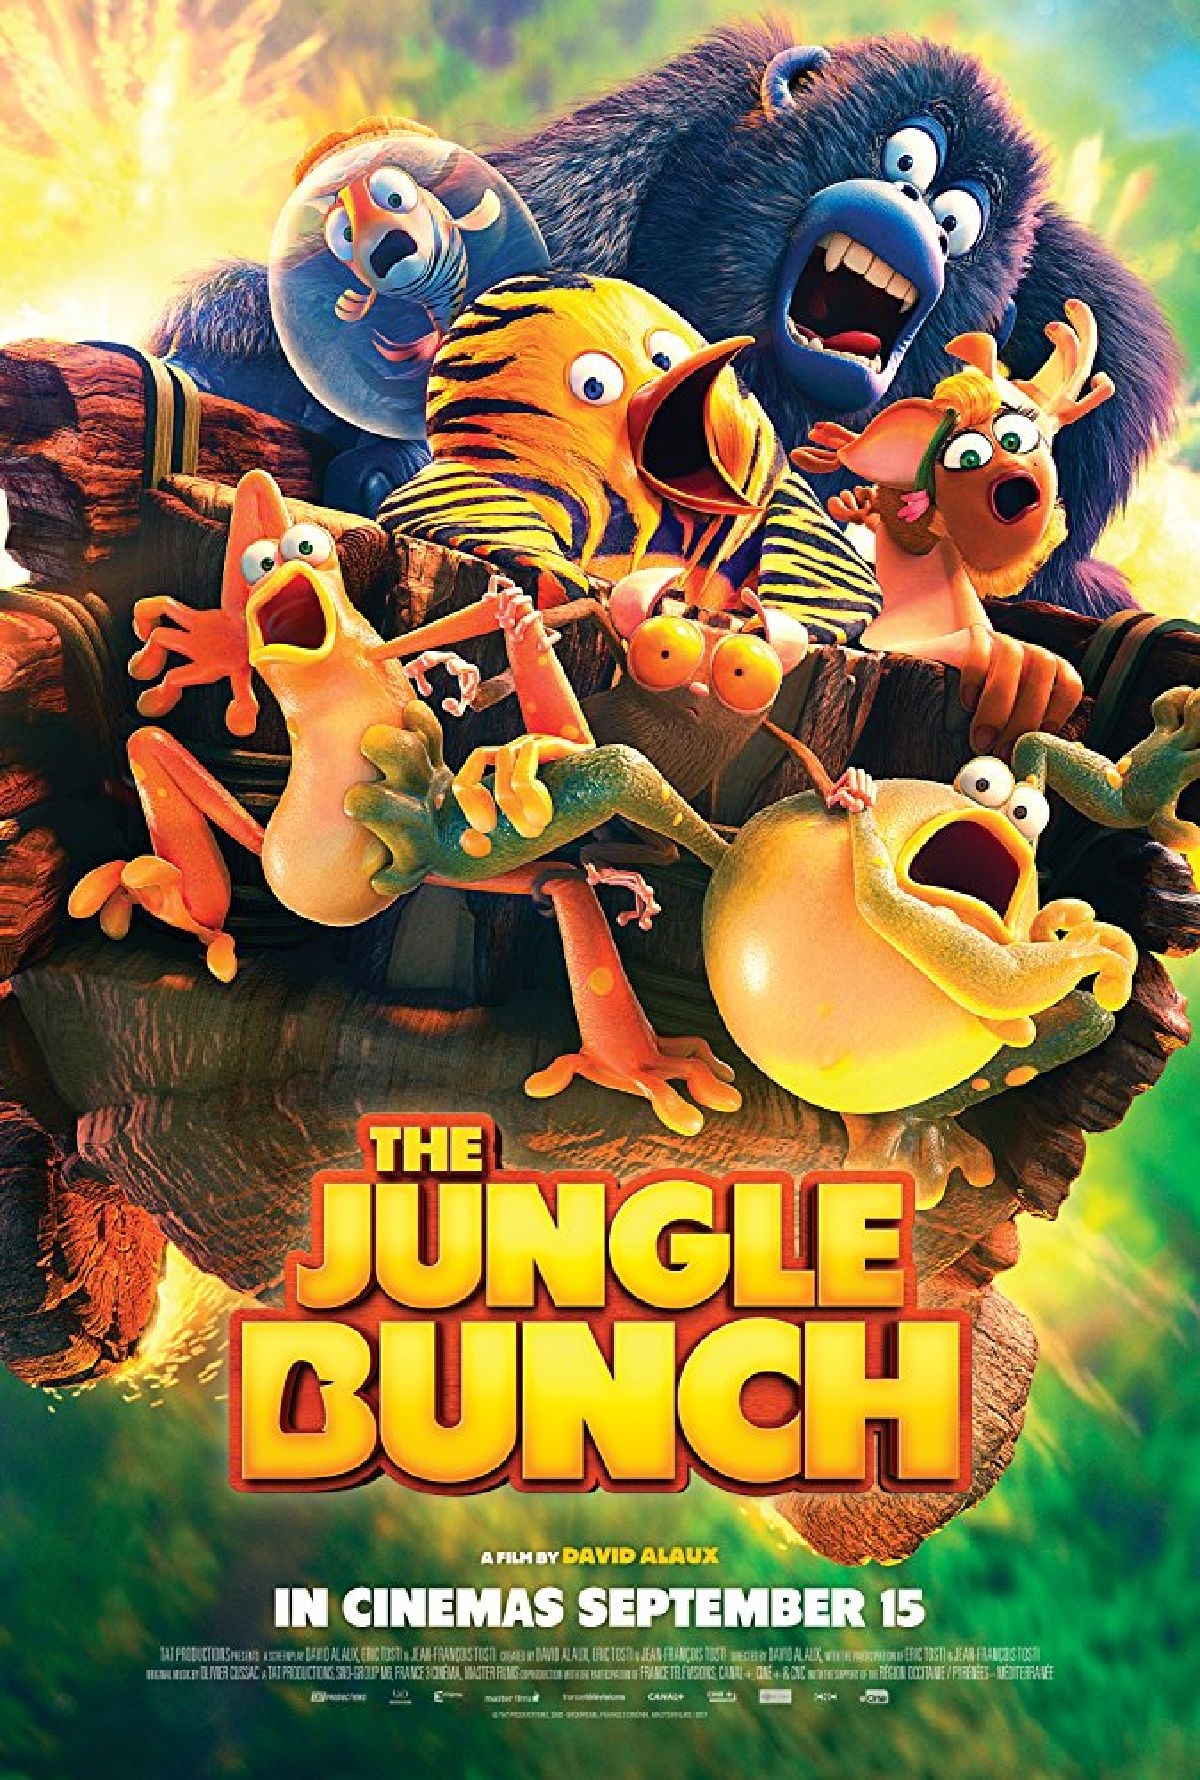 'The Jungle Bunch' movie poster